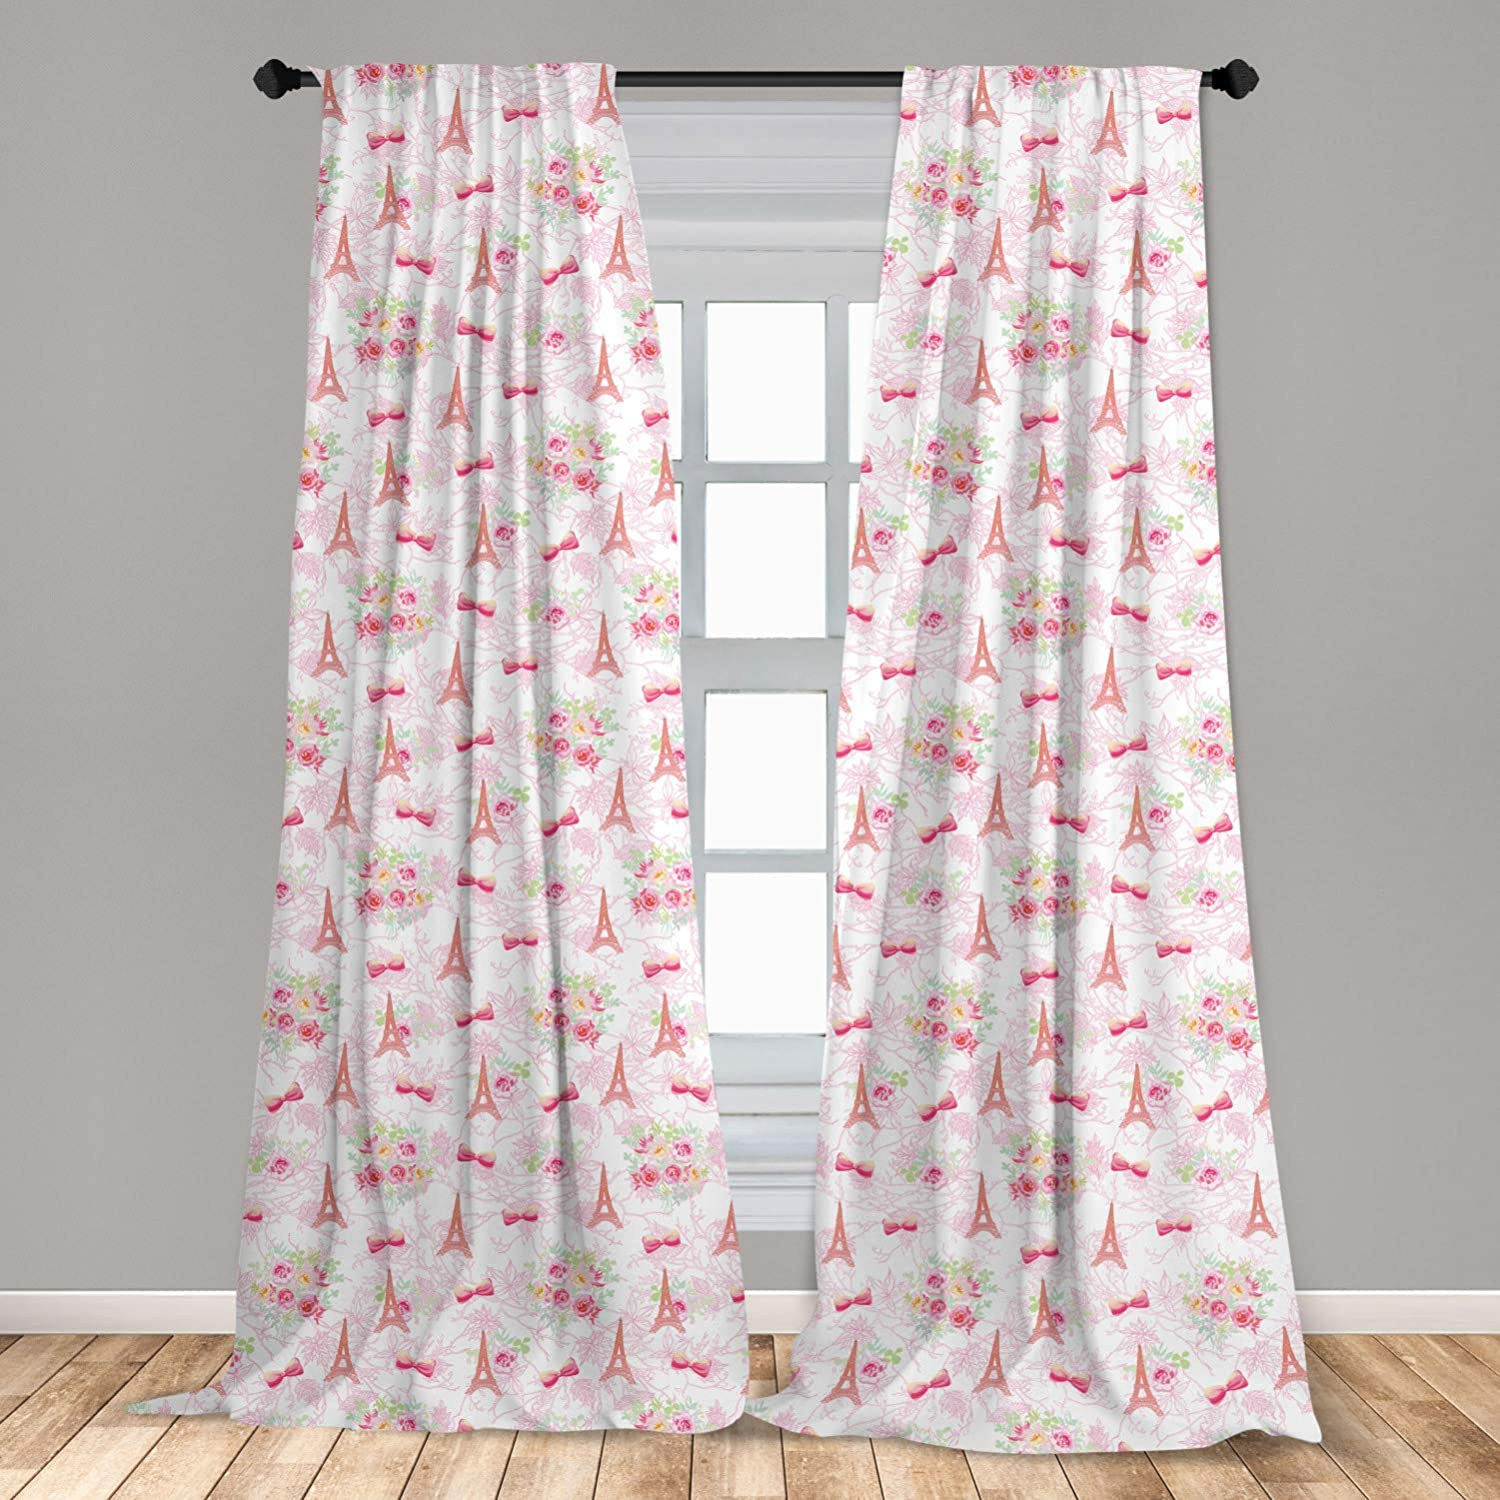 Ambesonne Paris Curtains, Eiffel Towers and French Bouquets Bows with Romantic Pattern, Window Treatments 2 Panel Set for Living Room Bedroom Decor, 56